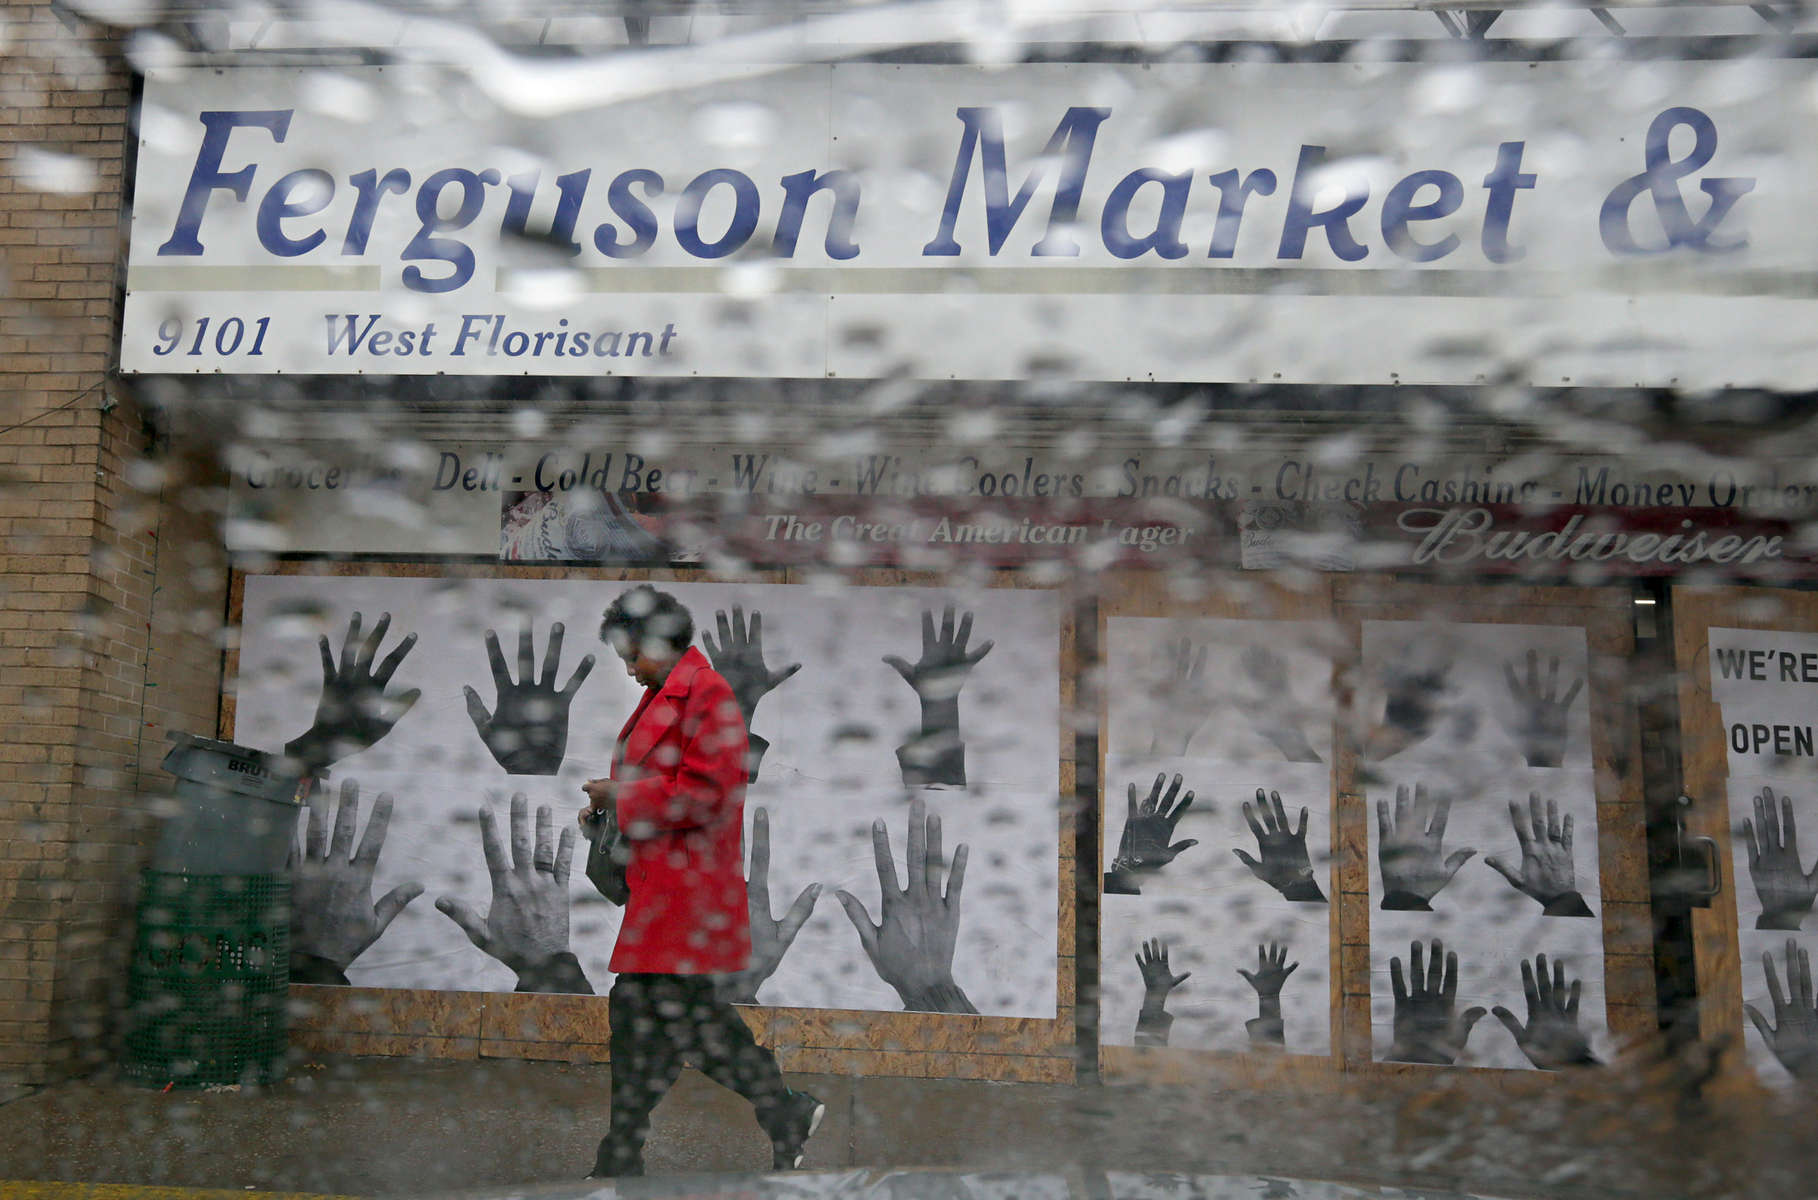 Lisa Johnson, 49, from Northwoods, walks out of the Ferguson Market & Liquor store on West Florissant Avenue in Ferguson on Sunday, Nov. 23, 2014.  {quote}They're not going to make the right decision{quote} said Johnson expressing concern about the grand jury's decision that is expected to be released any day now.   {quote}If they're going to continue to kill our children we should be able to sue those officers.{quote}  Johnson's daughter and three grandchildren live on Canfield Drive.Photo By David Carson, dcarson@post-dispatch.com